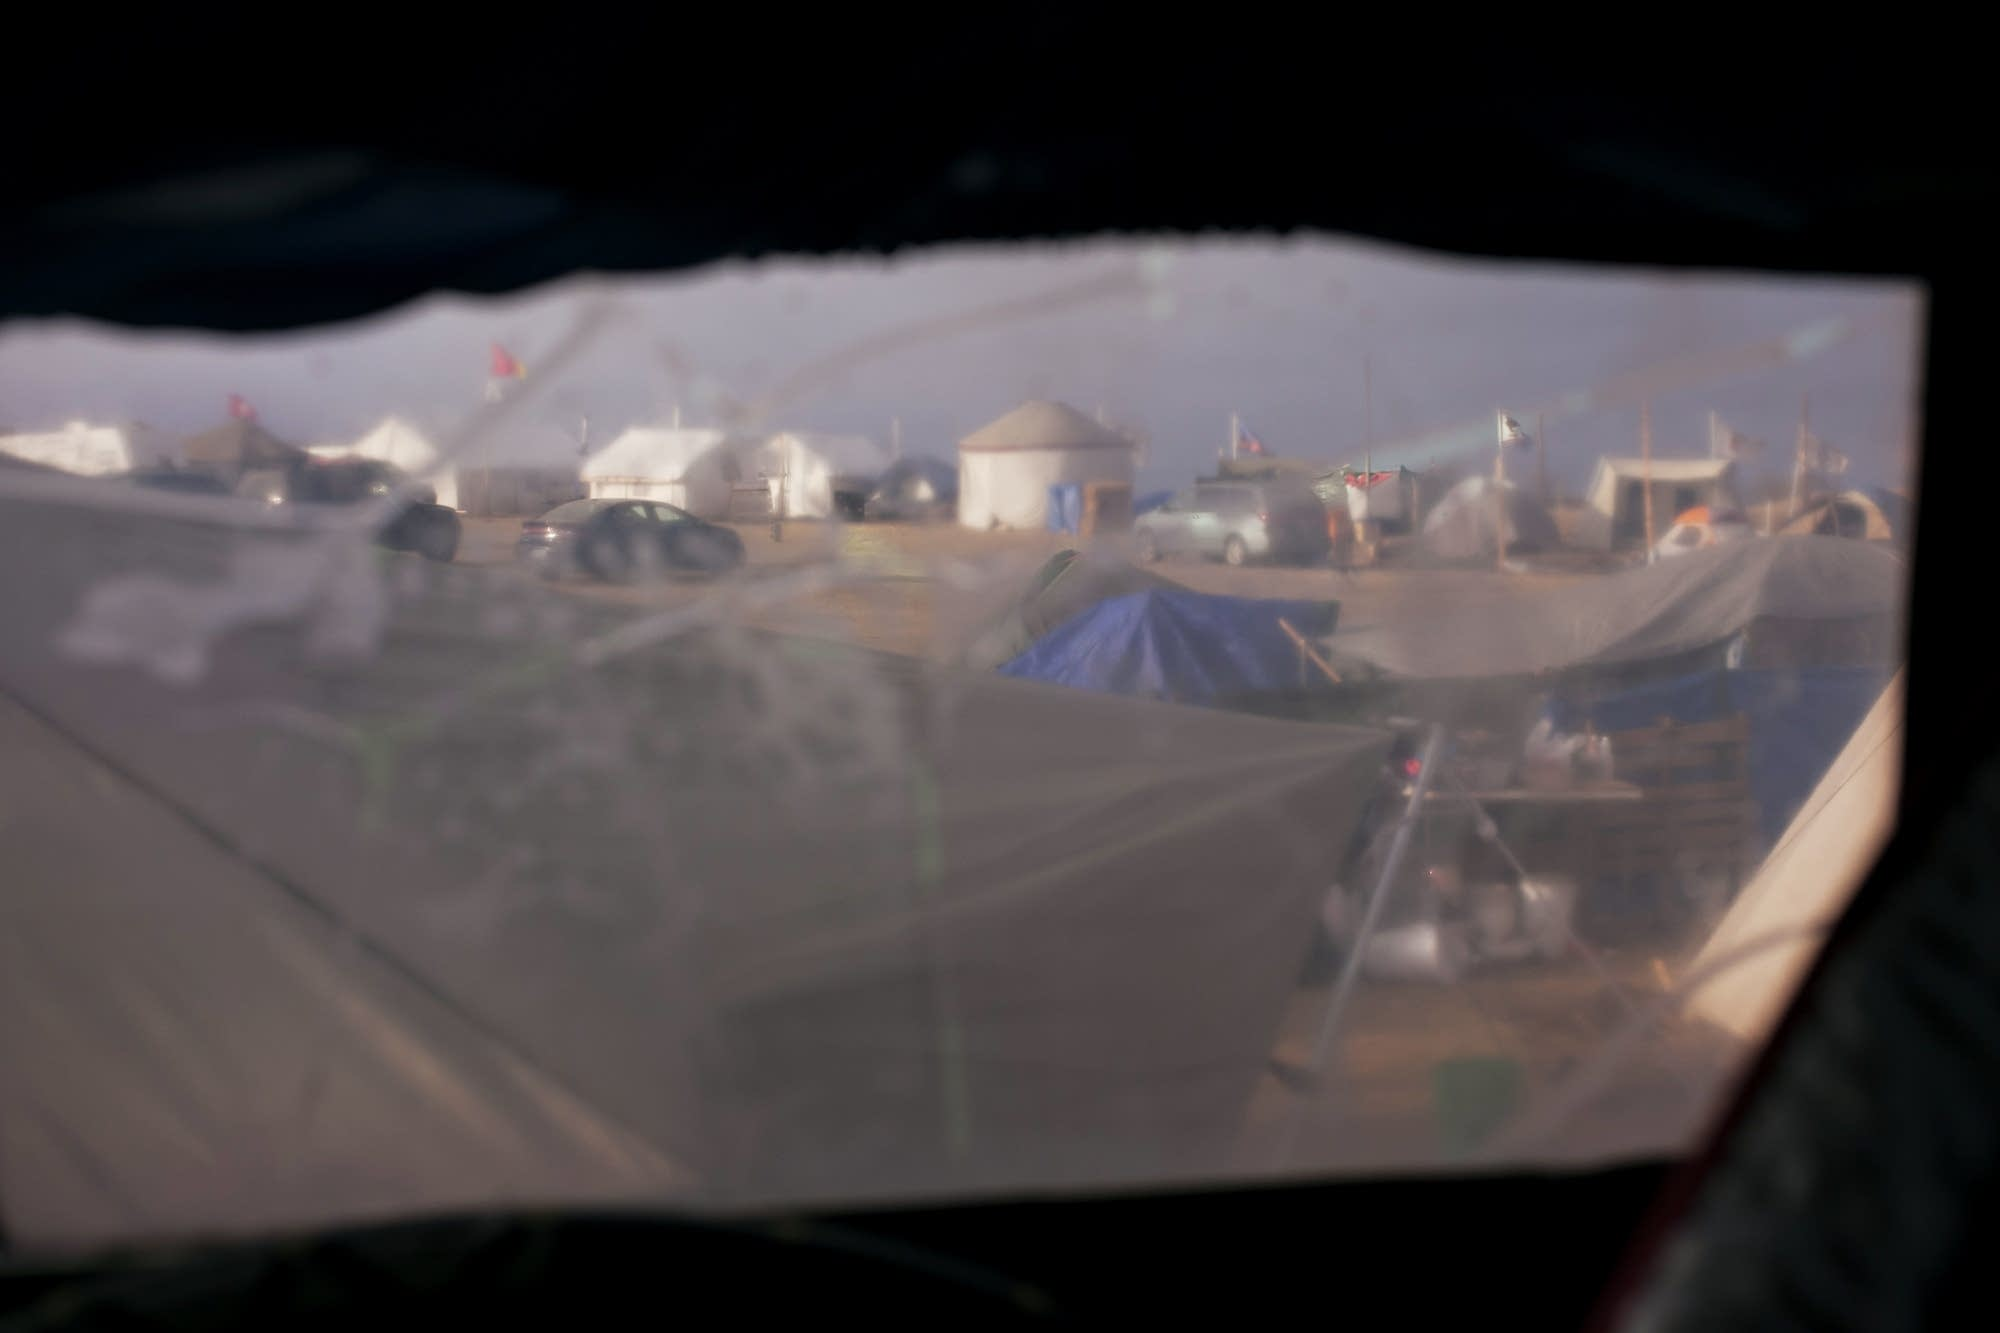 Part of the camp is visible through Kasto's window.